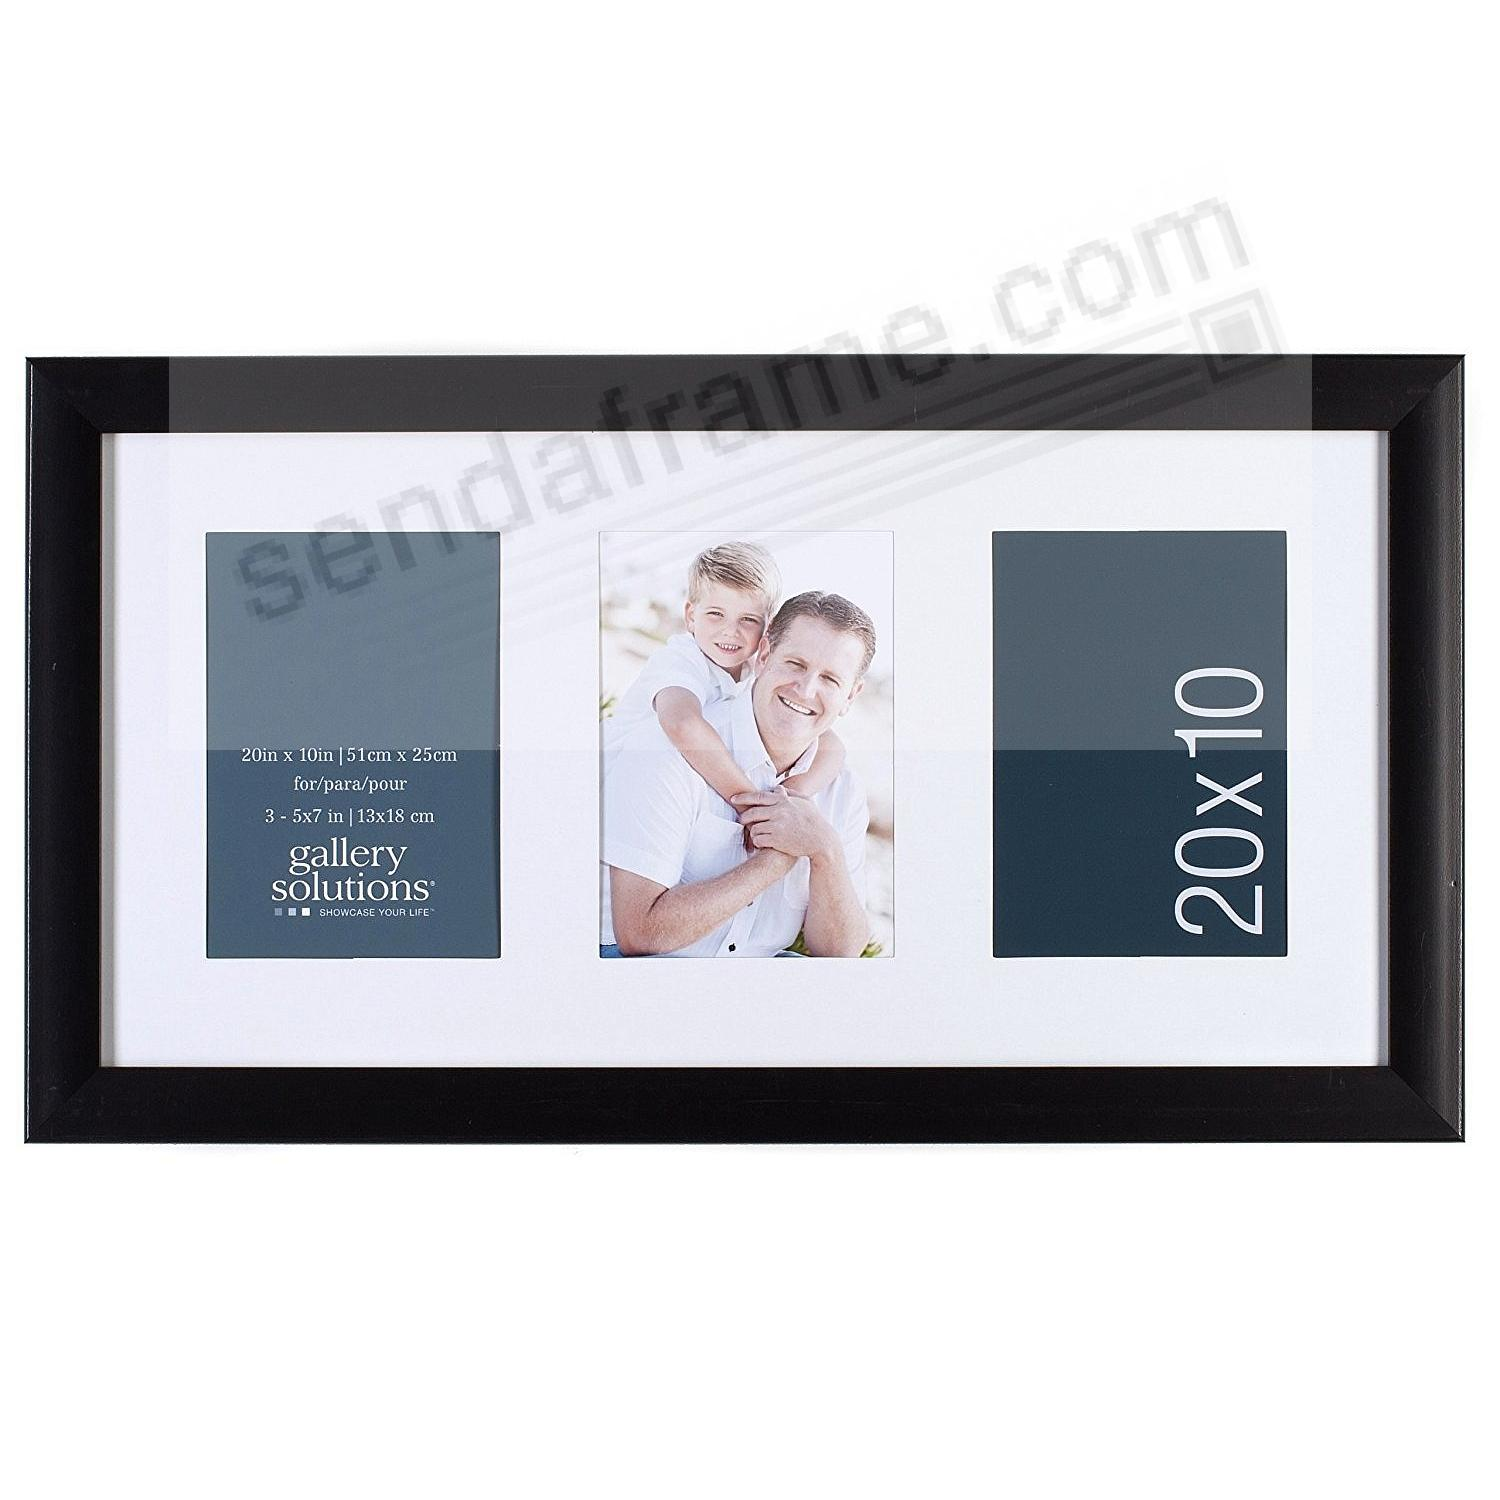 Glossy-Black 3-Opening 5x7 Collage Matted frame by Gallery Solutions™